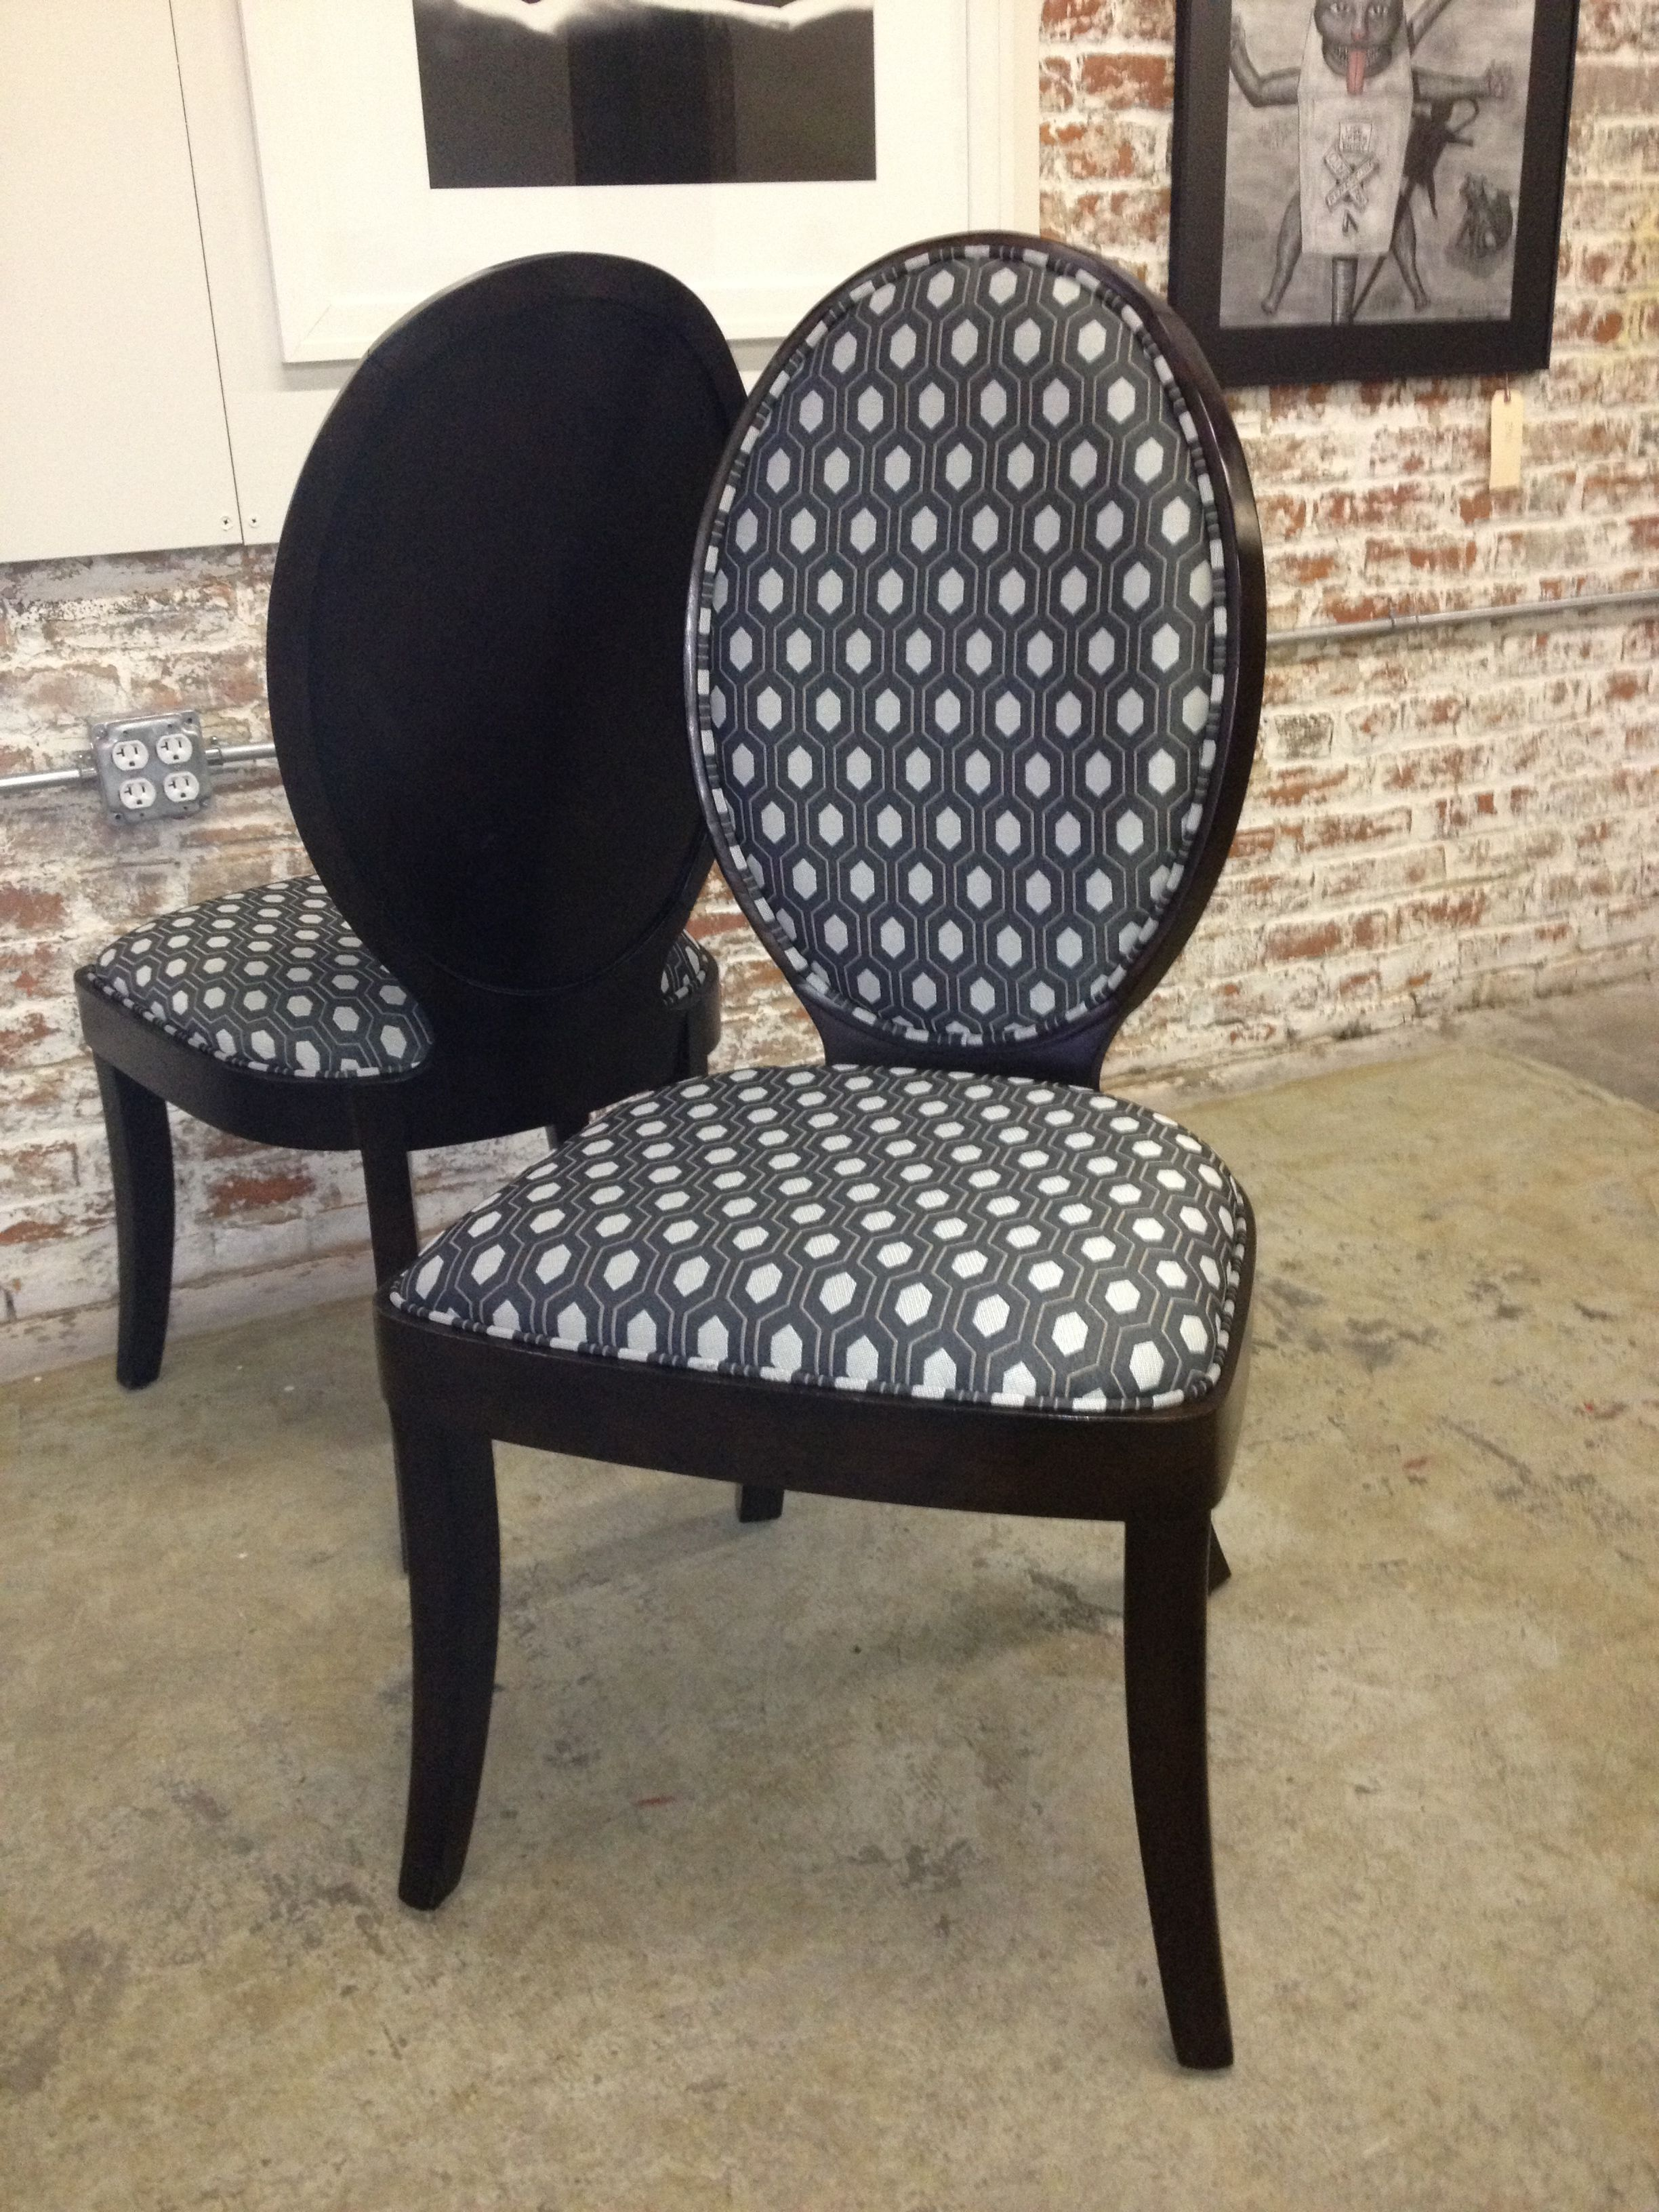 Pair Of Dining Chairs Reupholstered In Thom Felicia For Kravet By Sit On It A Chair Gallery Kansas City Dinning Room Chairs Chair Dining Chairs